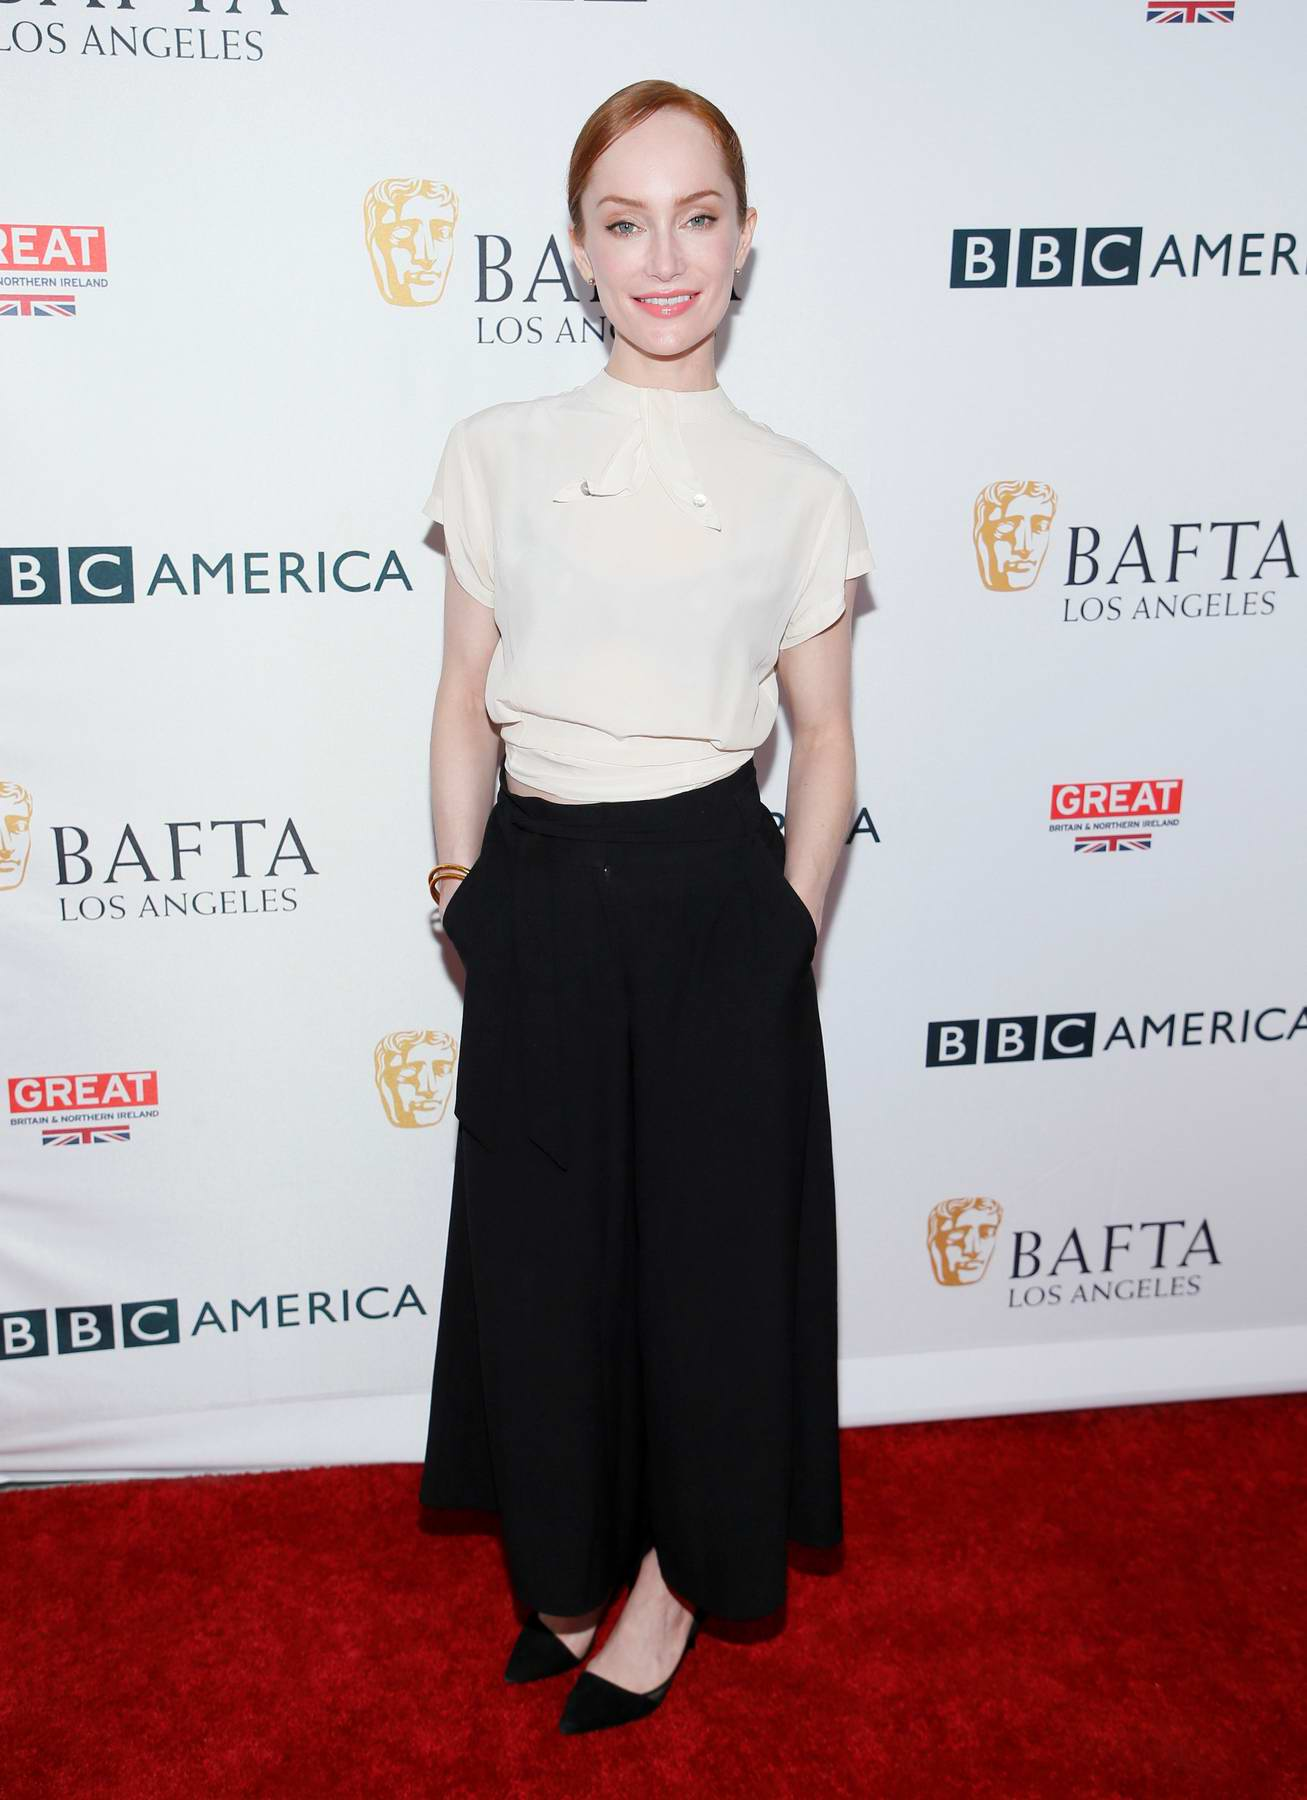 Lotte Verbeek at BBC America BAFTA TV Tea Party in Los Angeles